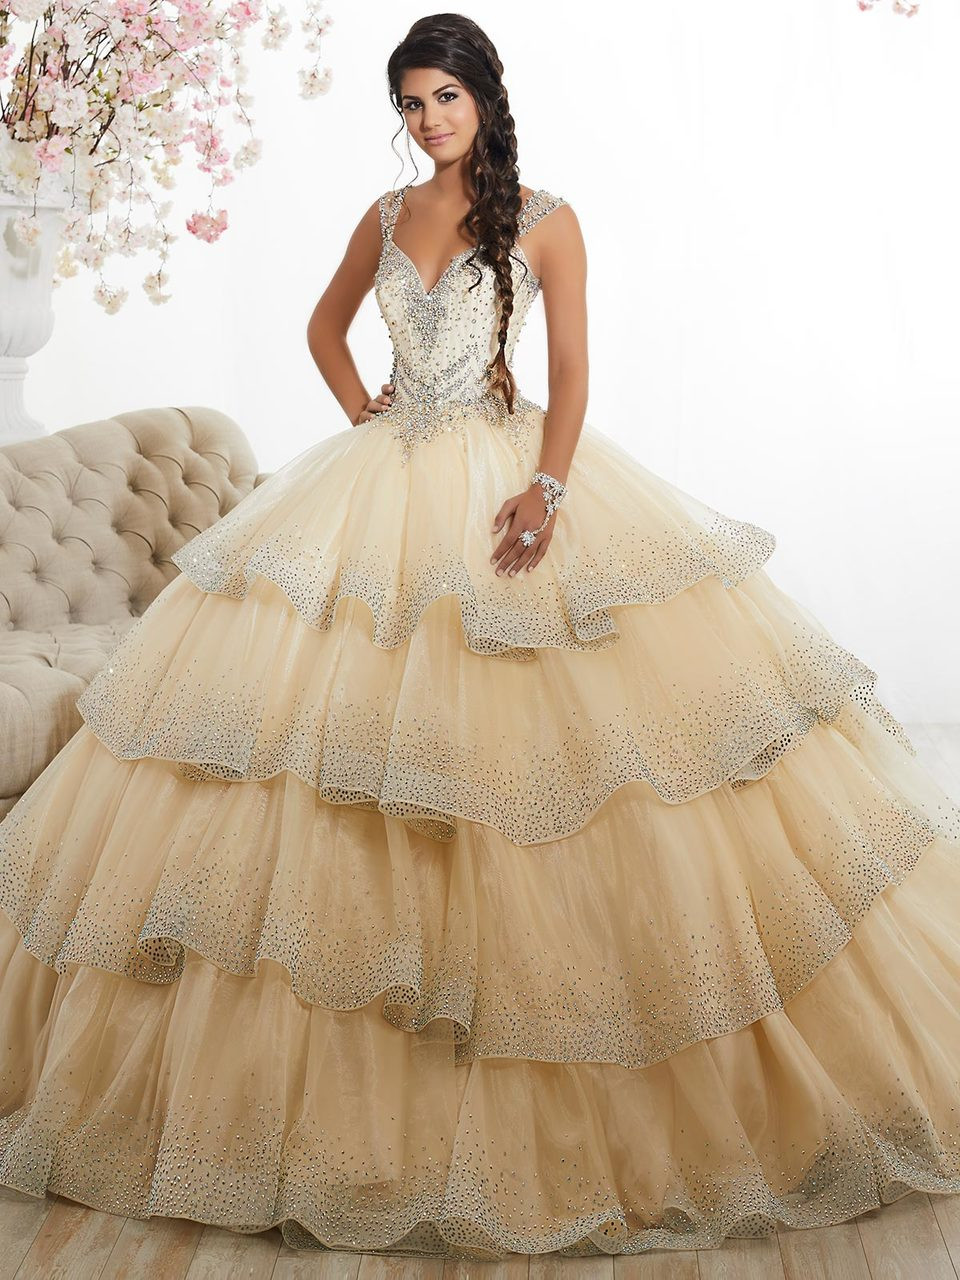 Sweetheart Ball Gown Tiffany Quinceanera Dress 26880 ...